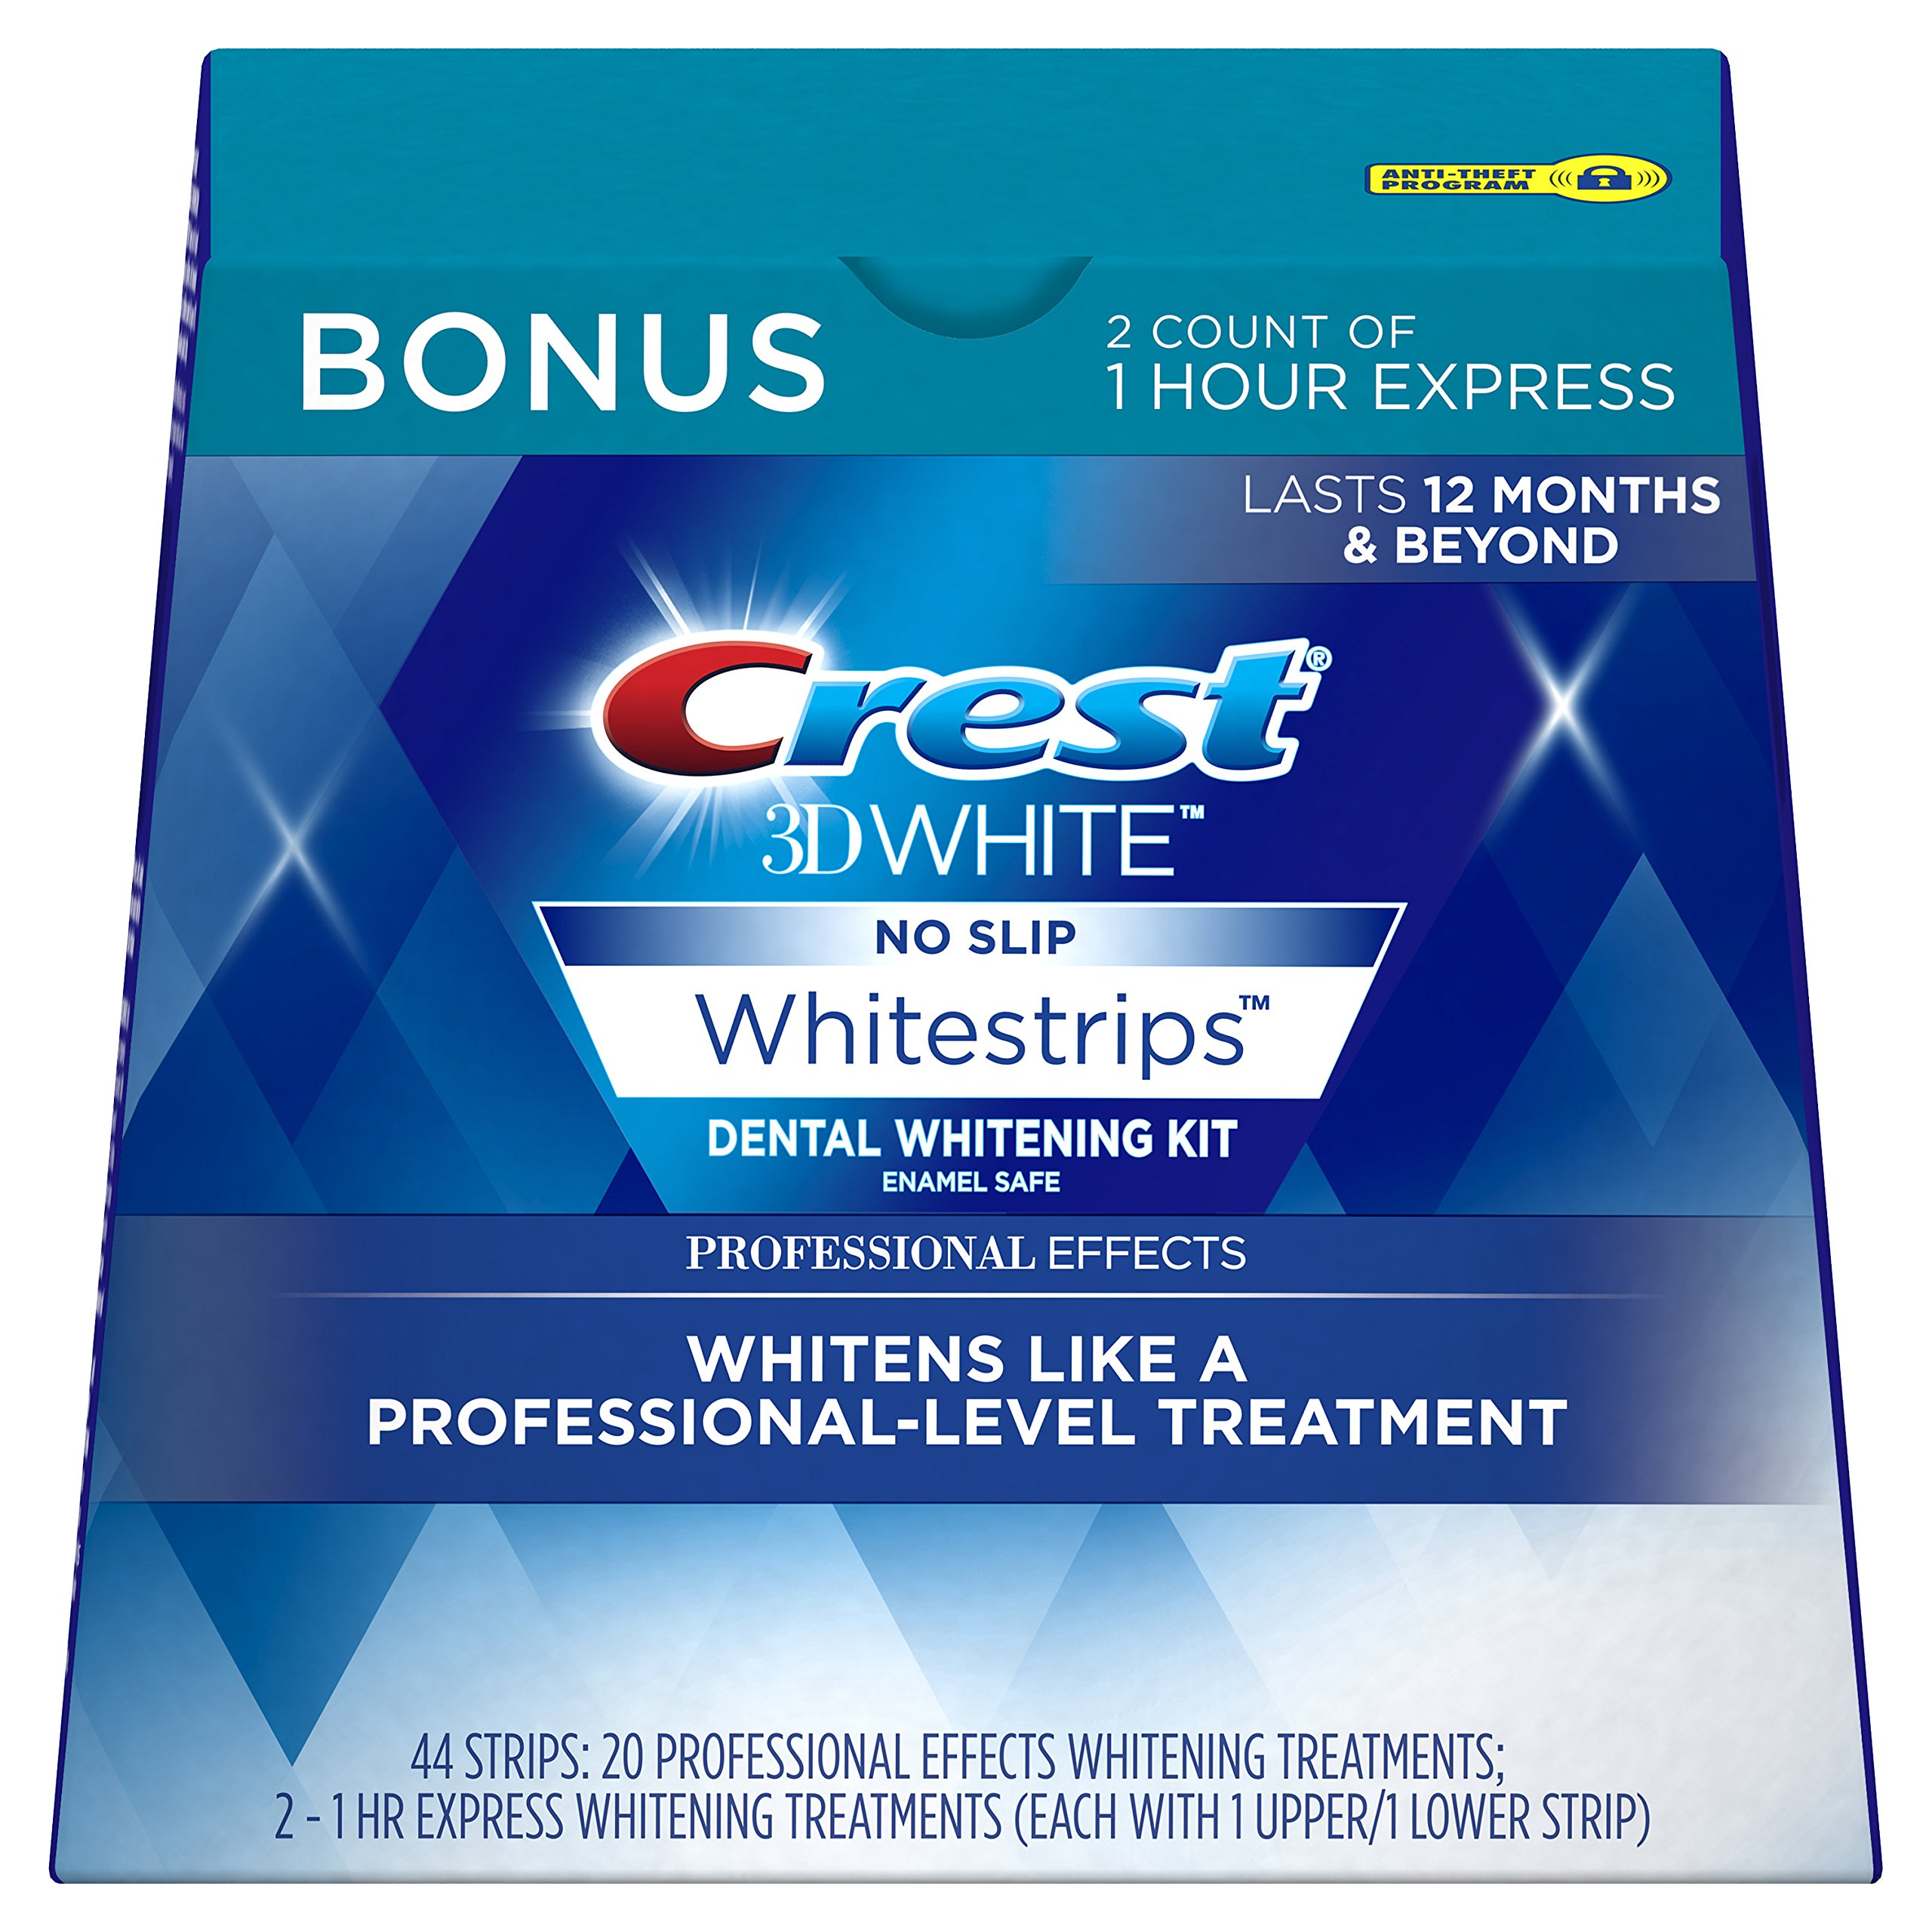 Crest 3D White Professional Effects Whitestrips Whitening Strips Kit, 22 Treatments, 20 Professional Effects + 2 1 Hour Express Whitestrips by Crest (Image #1)